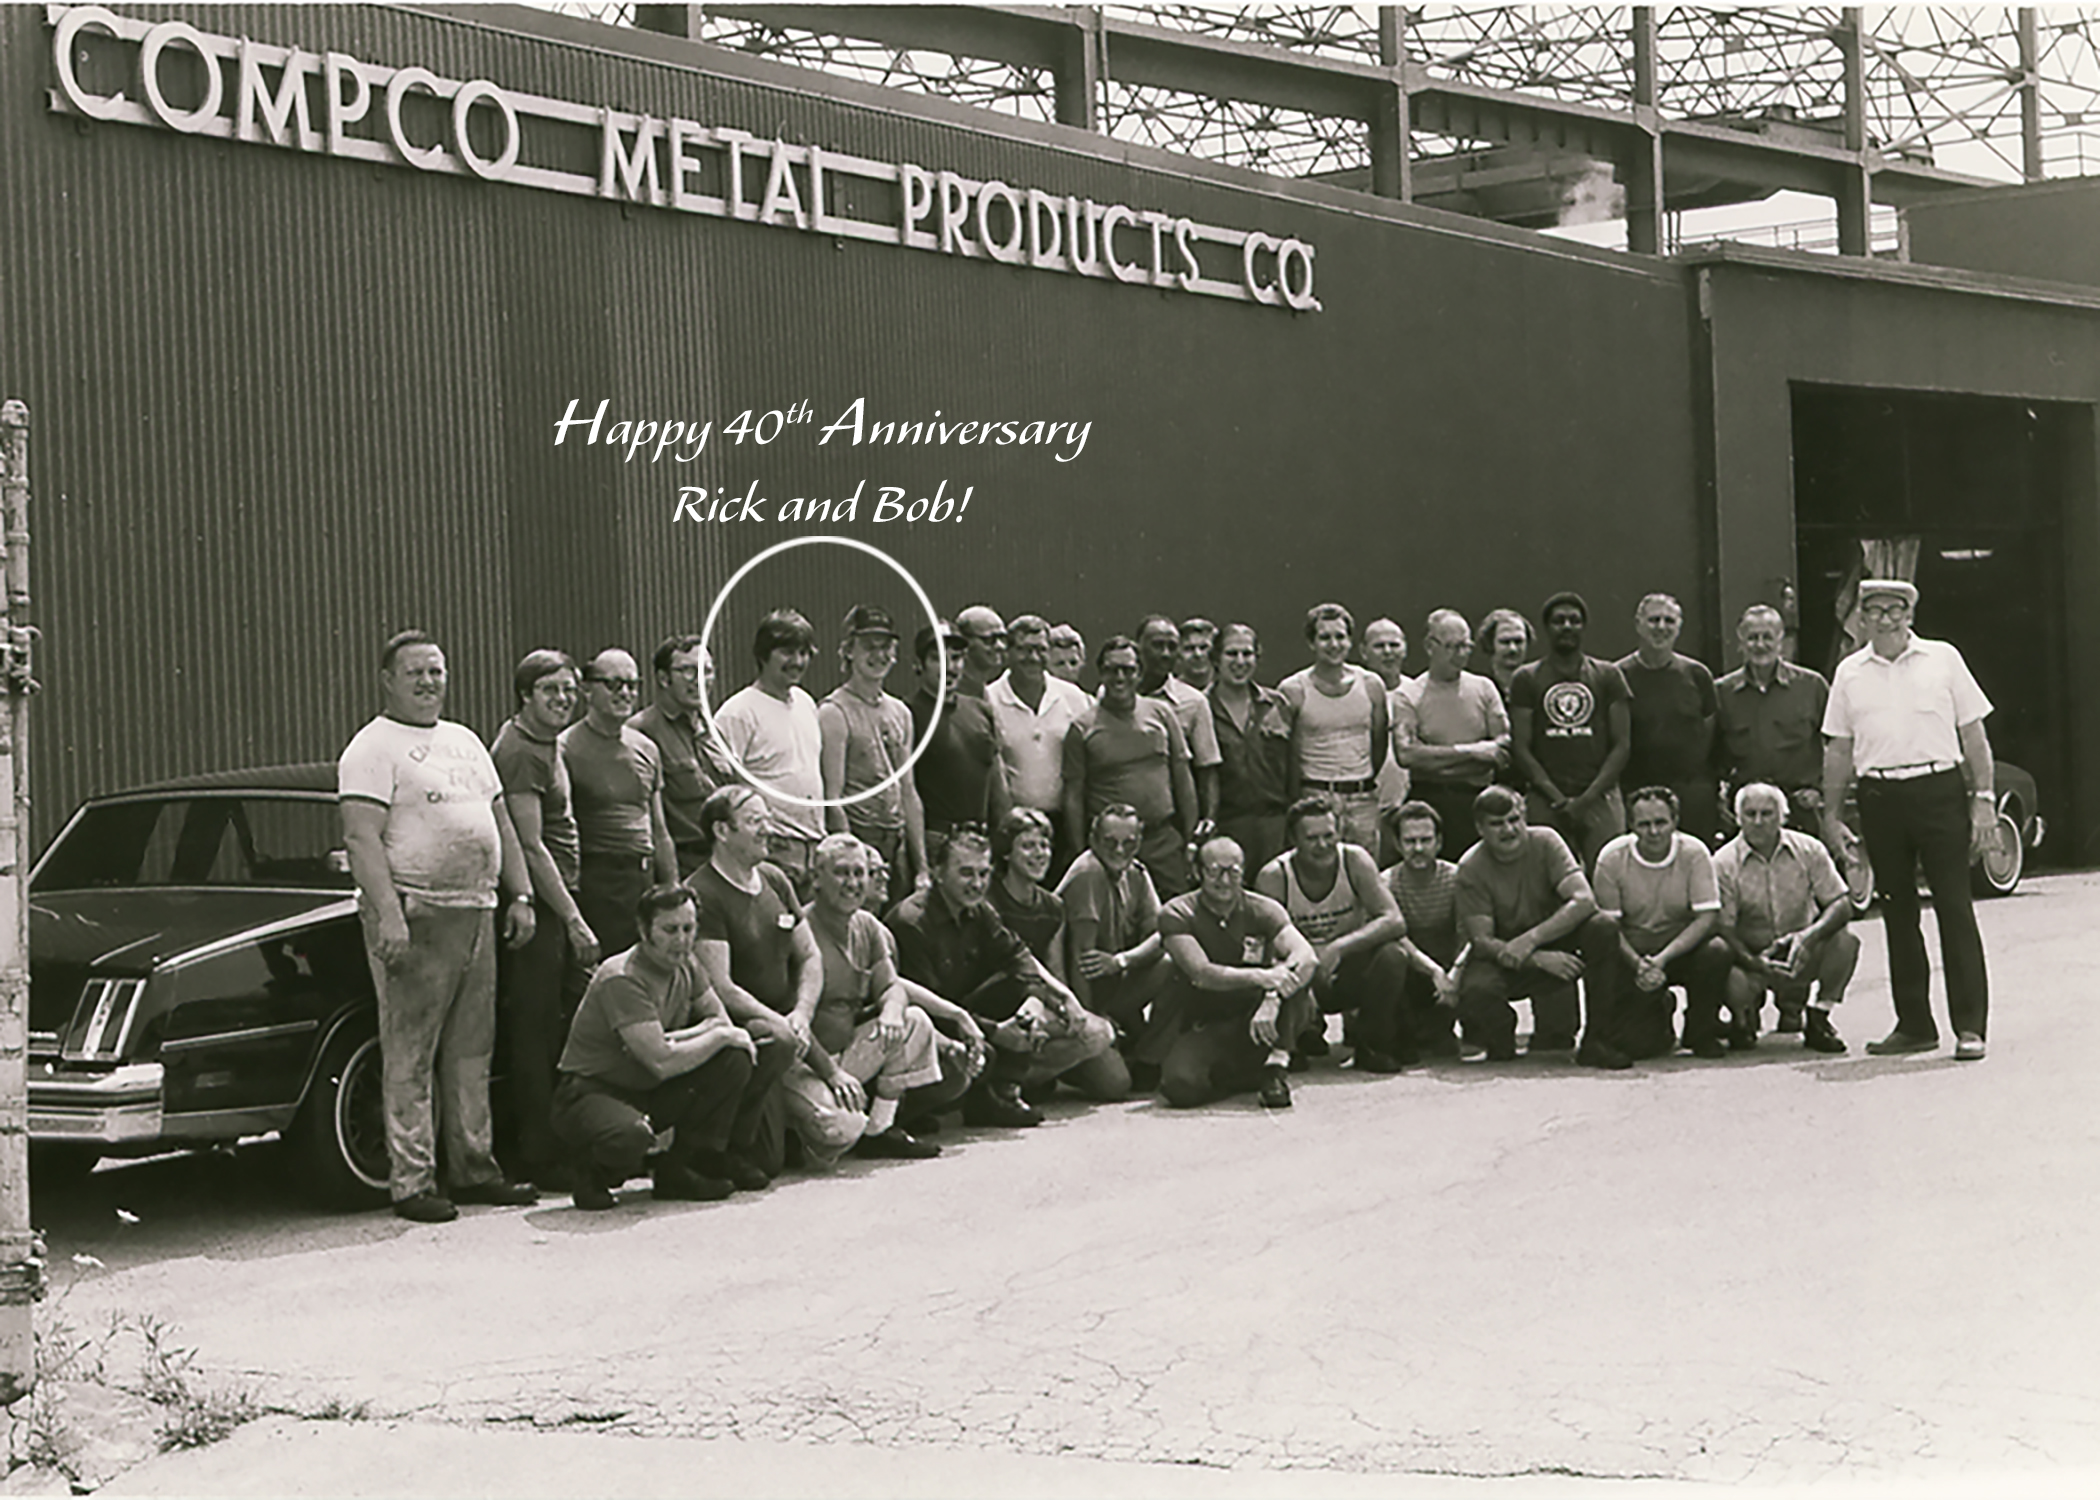 Compco Metal Products, 1980